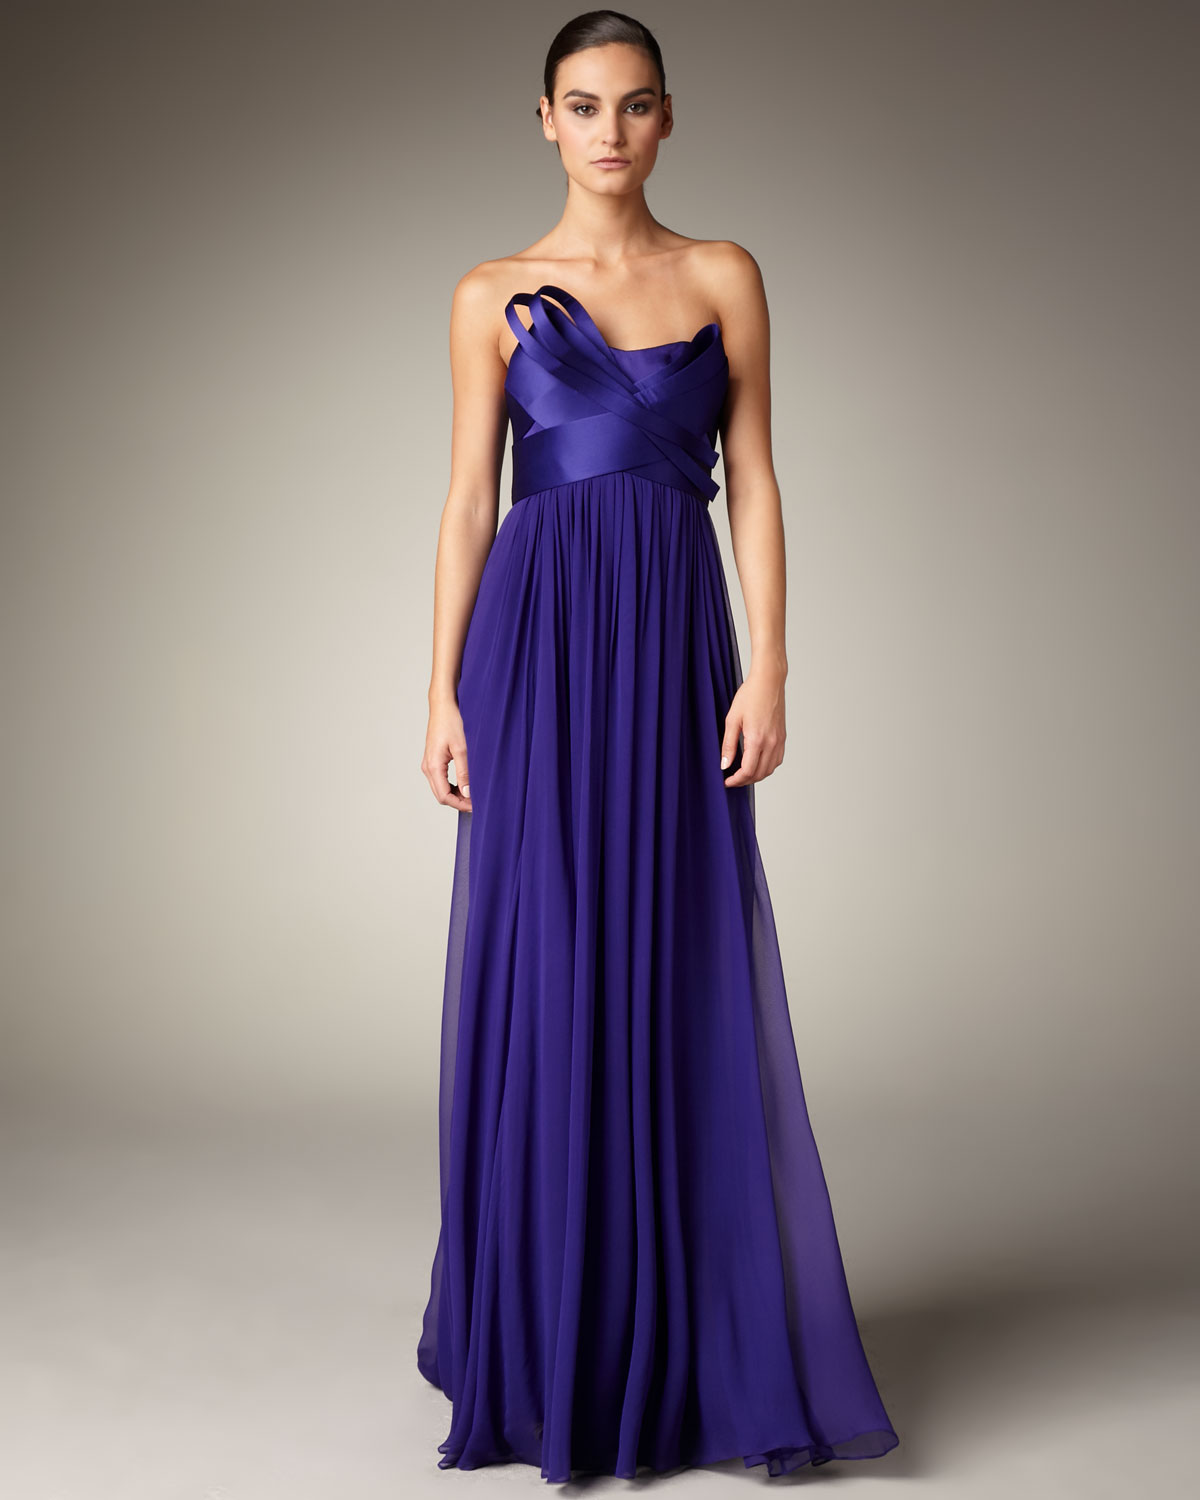 Lyst - Notte By Marchesa Sculpted-bodice Gown in Purple